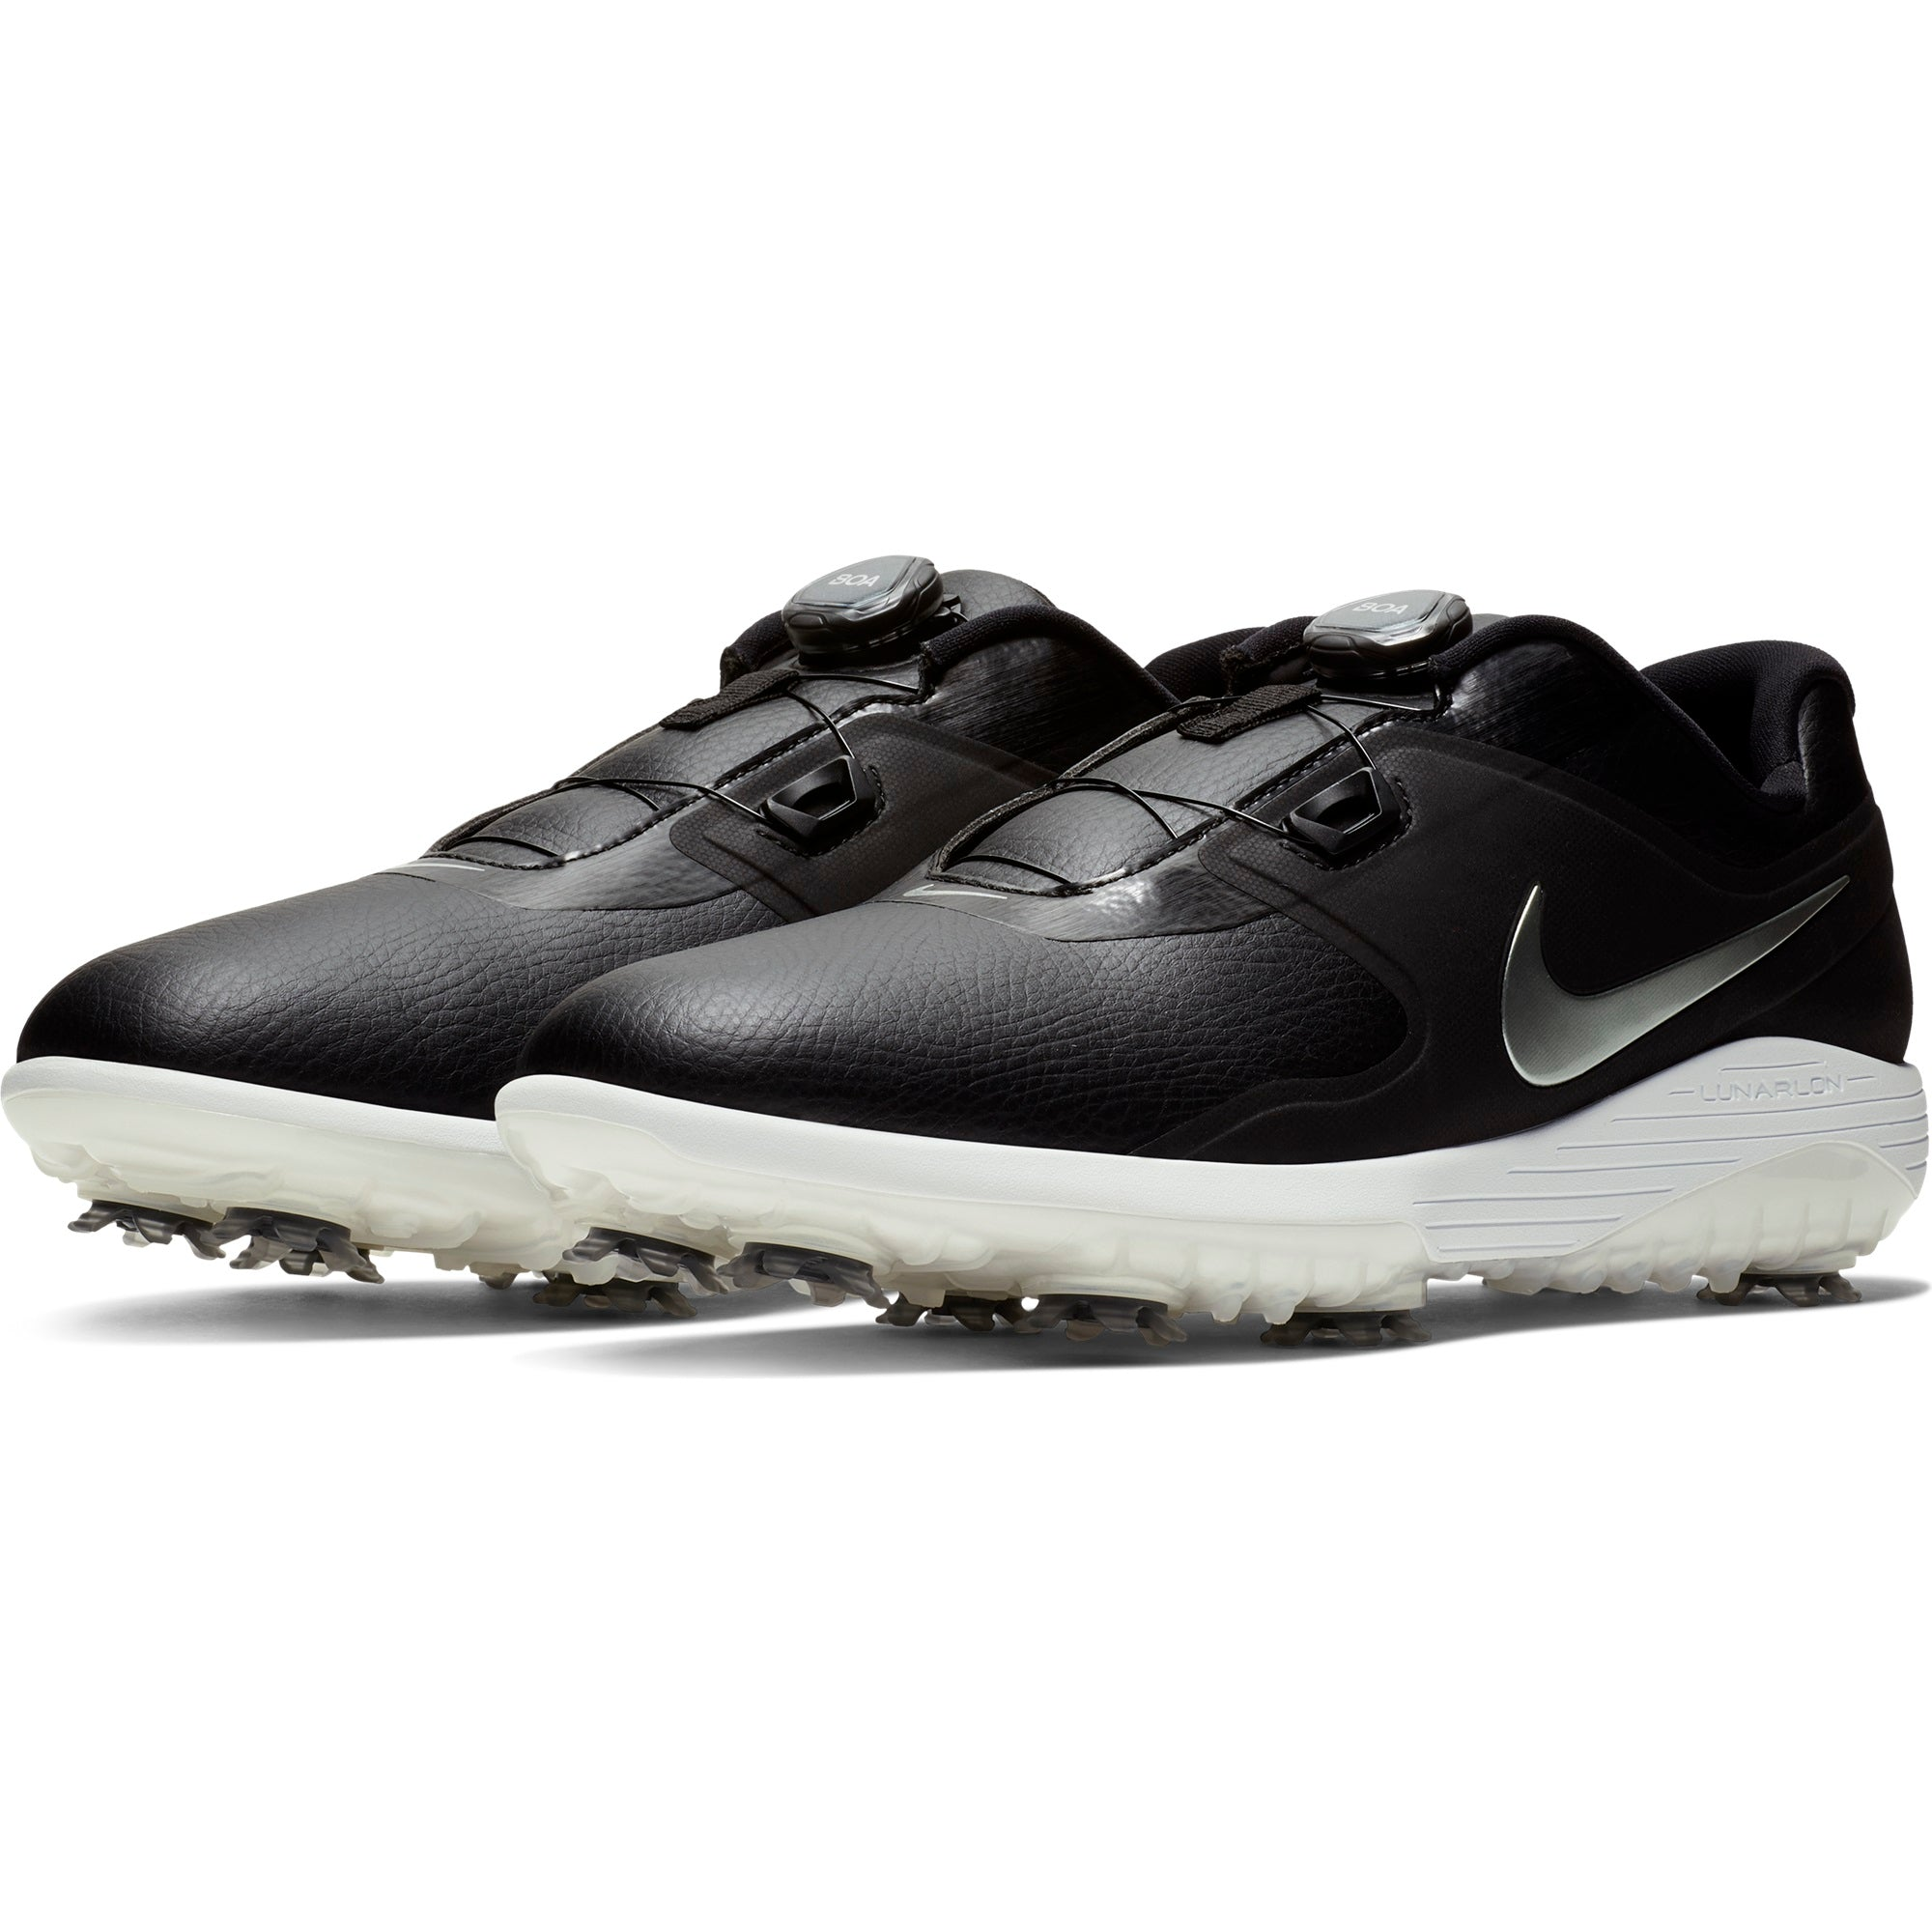 Nike Vapor Pro BOA Golf Shoes AQ1790